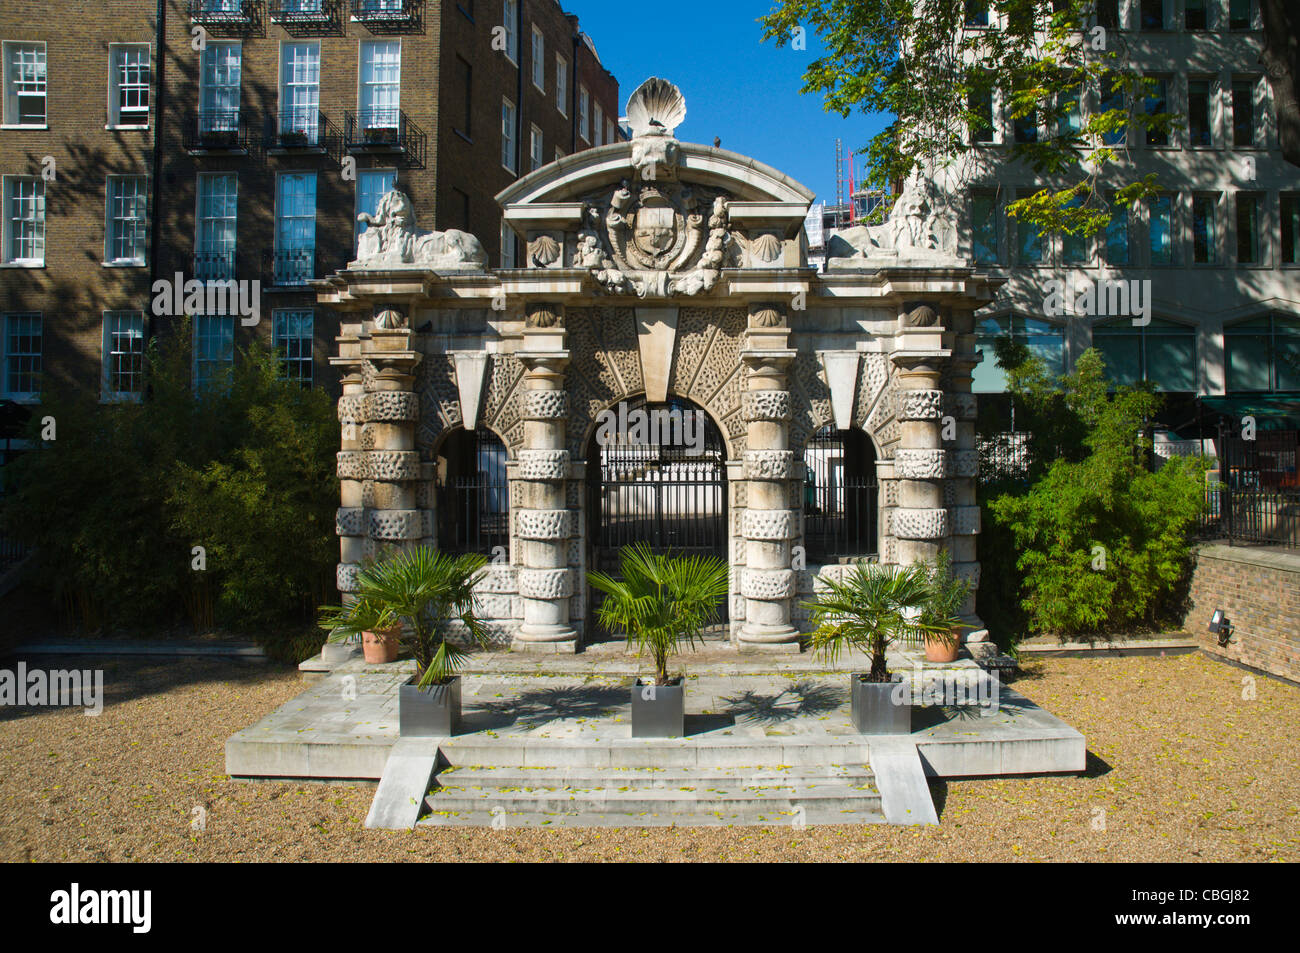 York Water Gate in Victoria Embankment Gardens park central London England UK Europe - Stock Image